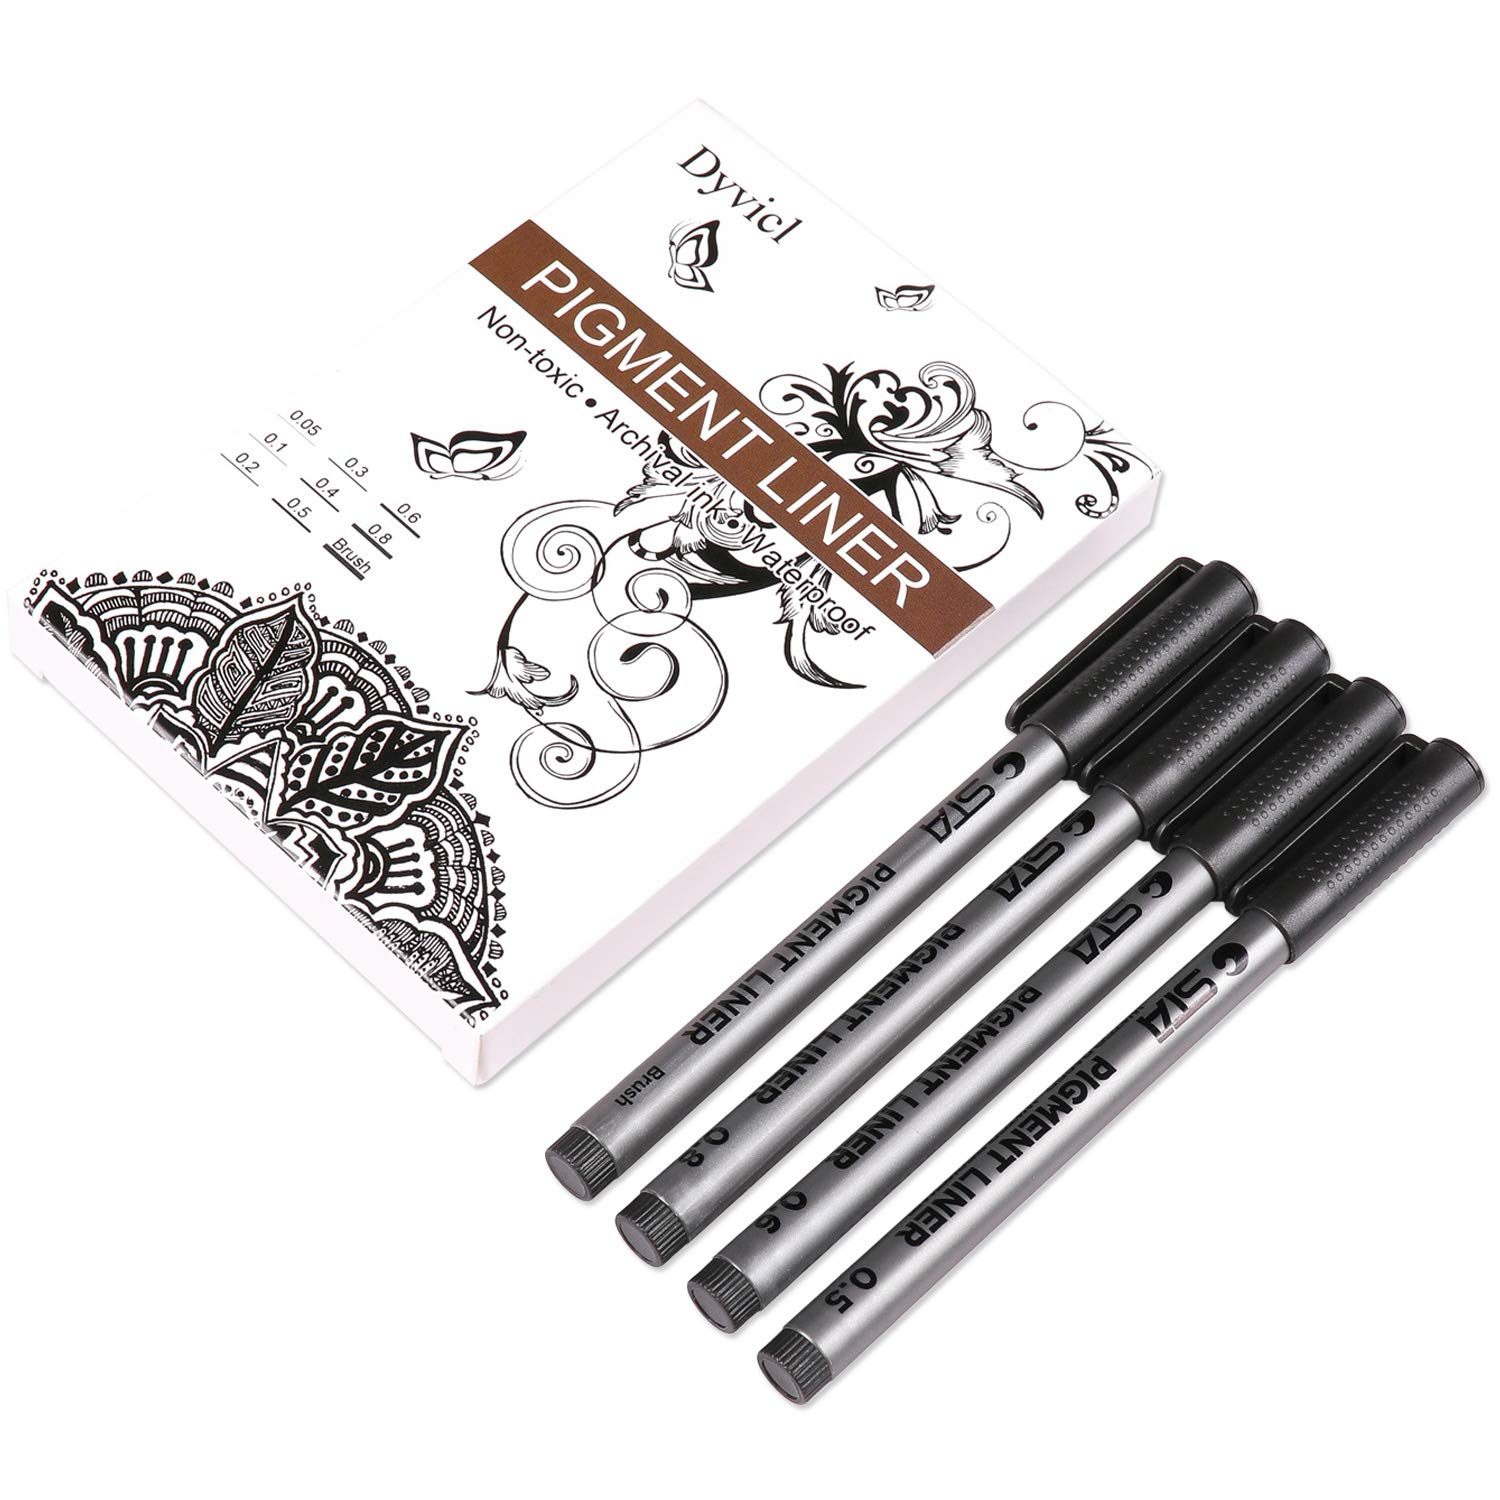 Dyvicl Black Micro-Pen Fineliner Ink Pens - Waterproof Archival Ink Micro Fine Point Writing Drawing Pens for Sketching, Anime, Artist Illustration, Technical Drawing, Office Documents, Scrapbooking by Dyvicl (Image #9)